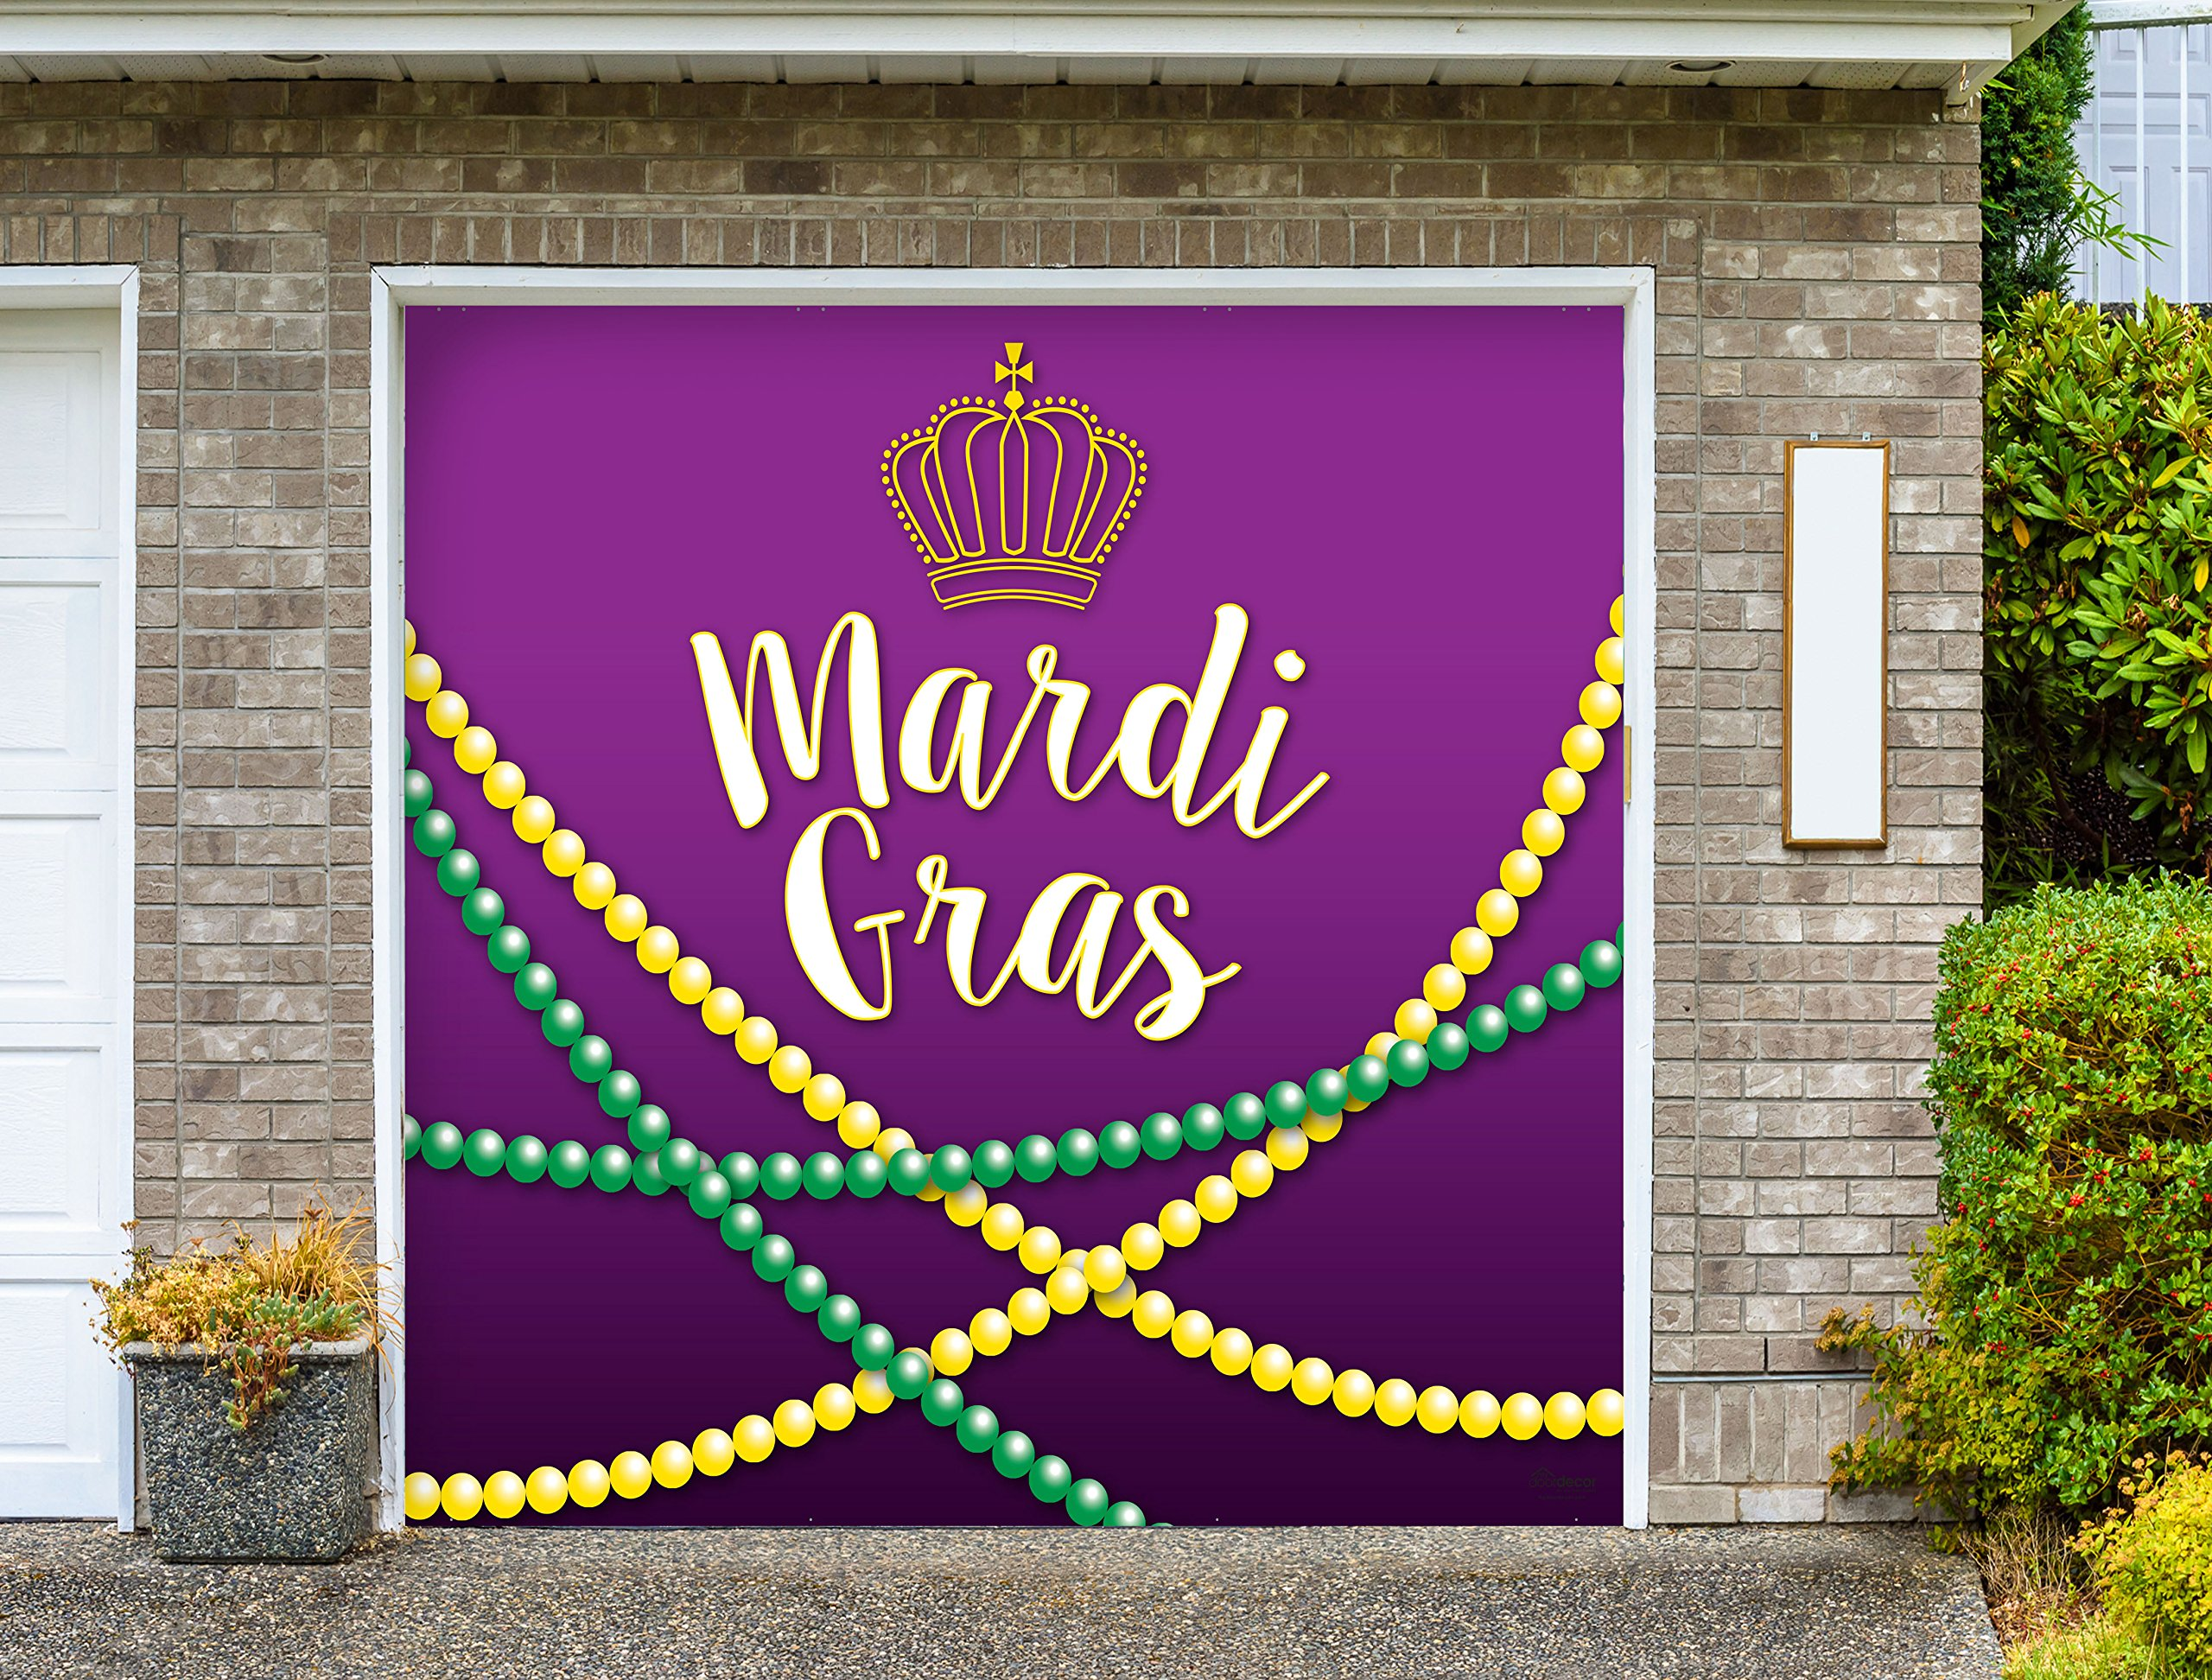 Outdoor Mardi Gras Decorations Garage Door Banner Cover Mural Décoration 8'x8' - Mardi Gras Beads - ''The Original Mardi Gras Supplies Holiday Garage Door Banner Decor'' by Victory Corps